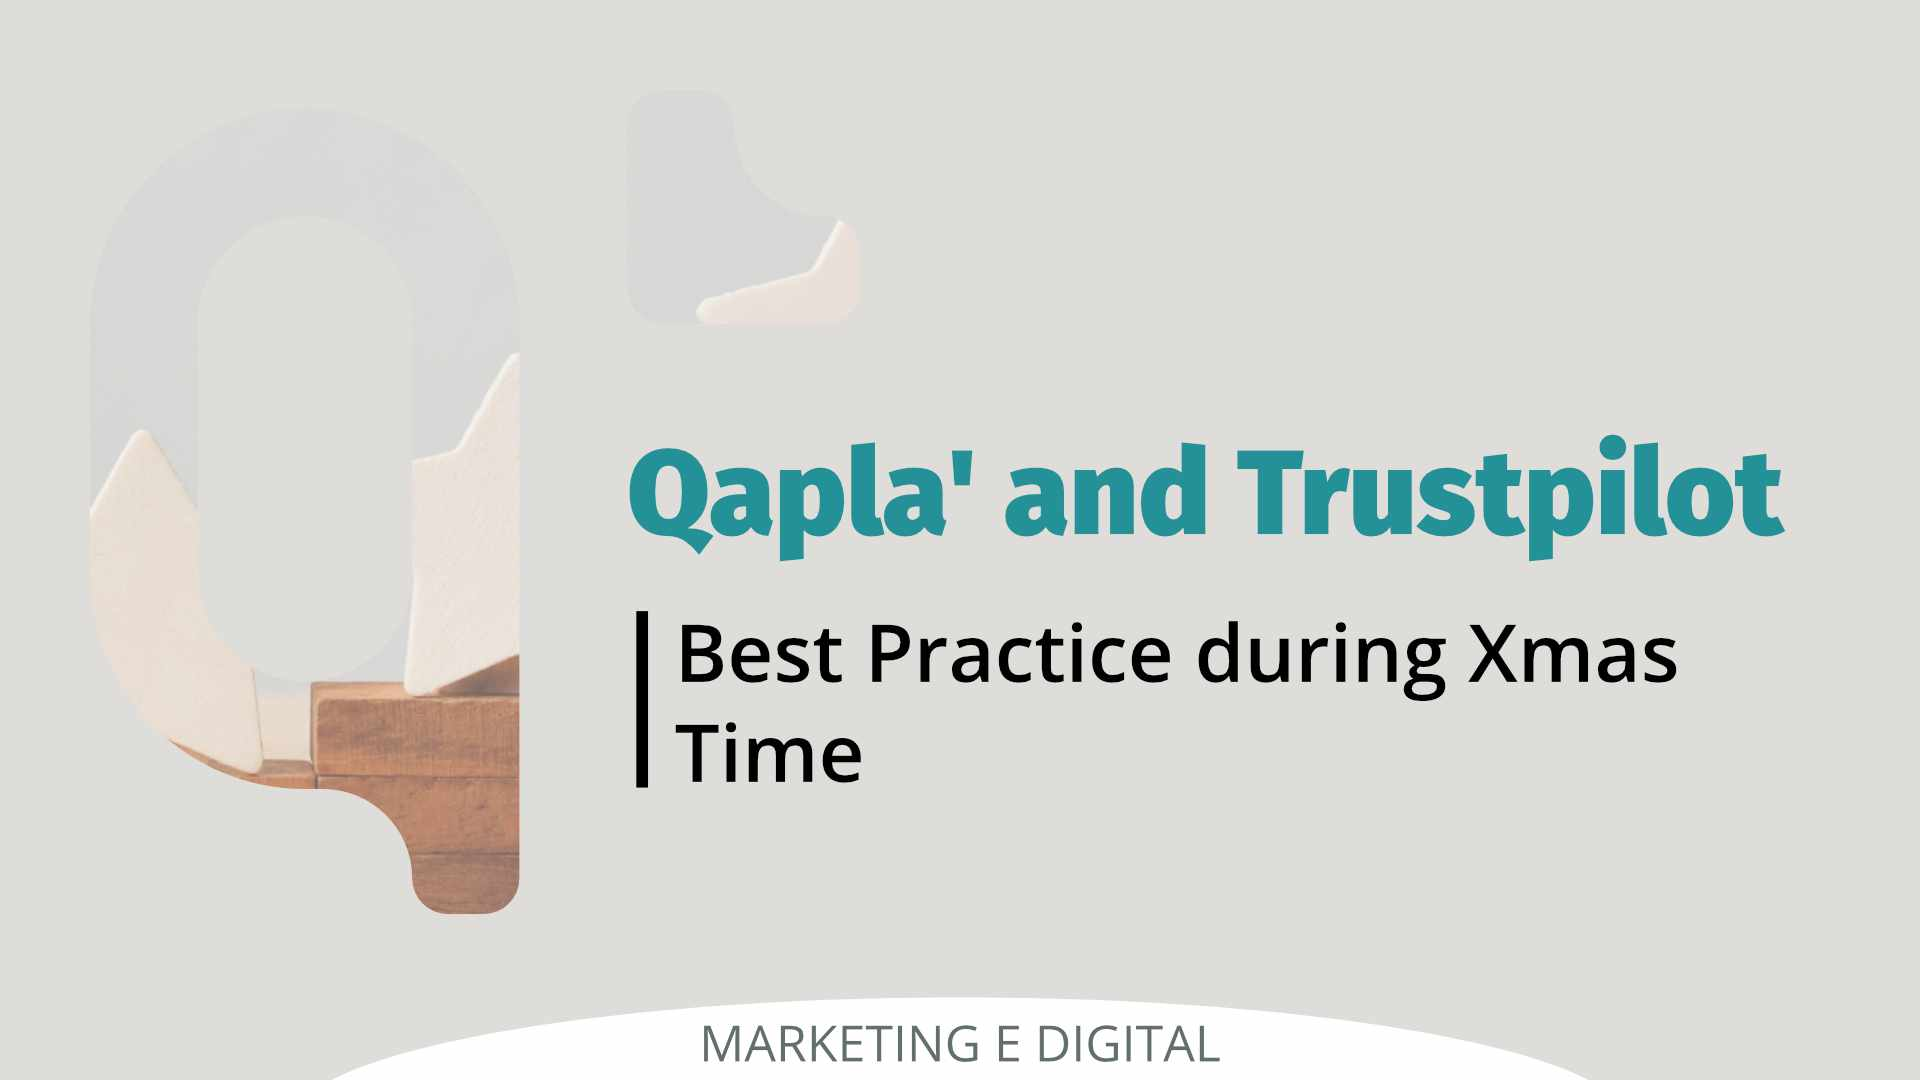 Qapla' and Verified Reviews Best Practice during Xmas Time